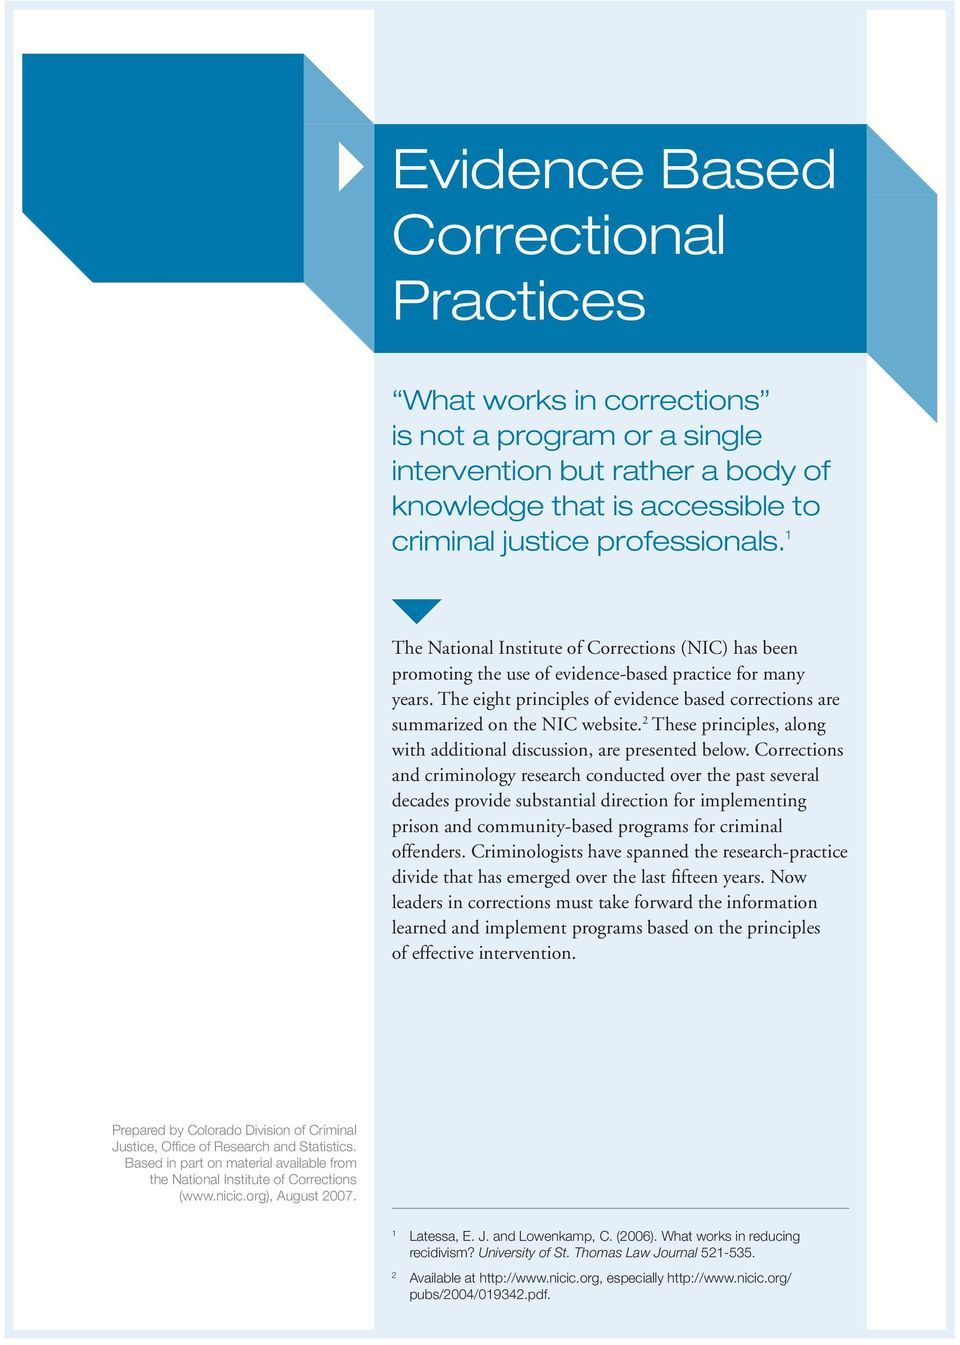 The eight principles of evidence based corrections are summarized on the NIC website. 2 These principles, along with additional discussion, are presented below.